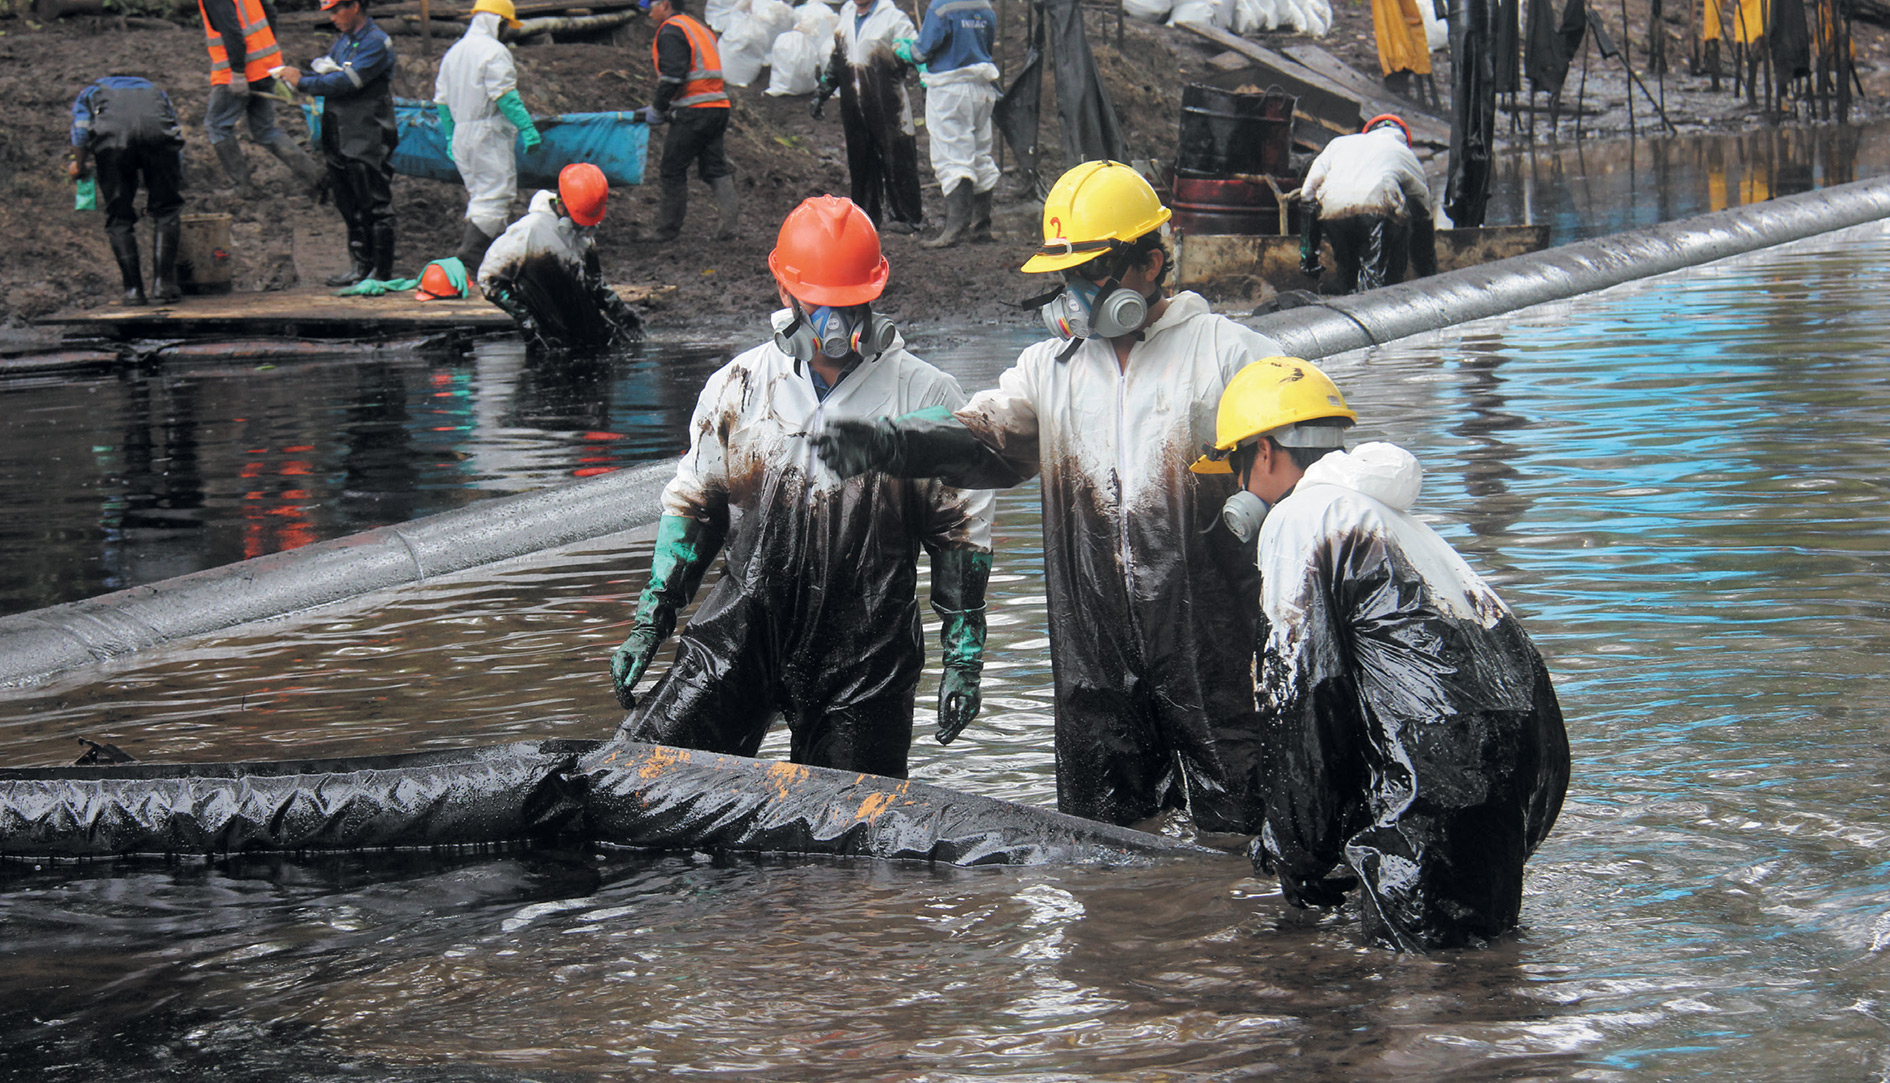 An oil spill clean-up in the community of Nueva Alianza, in Peru's northern Amazon region.